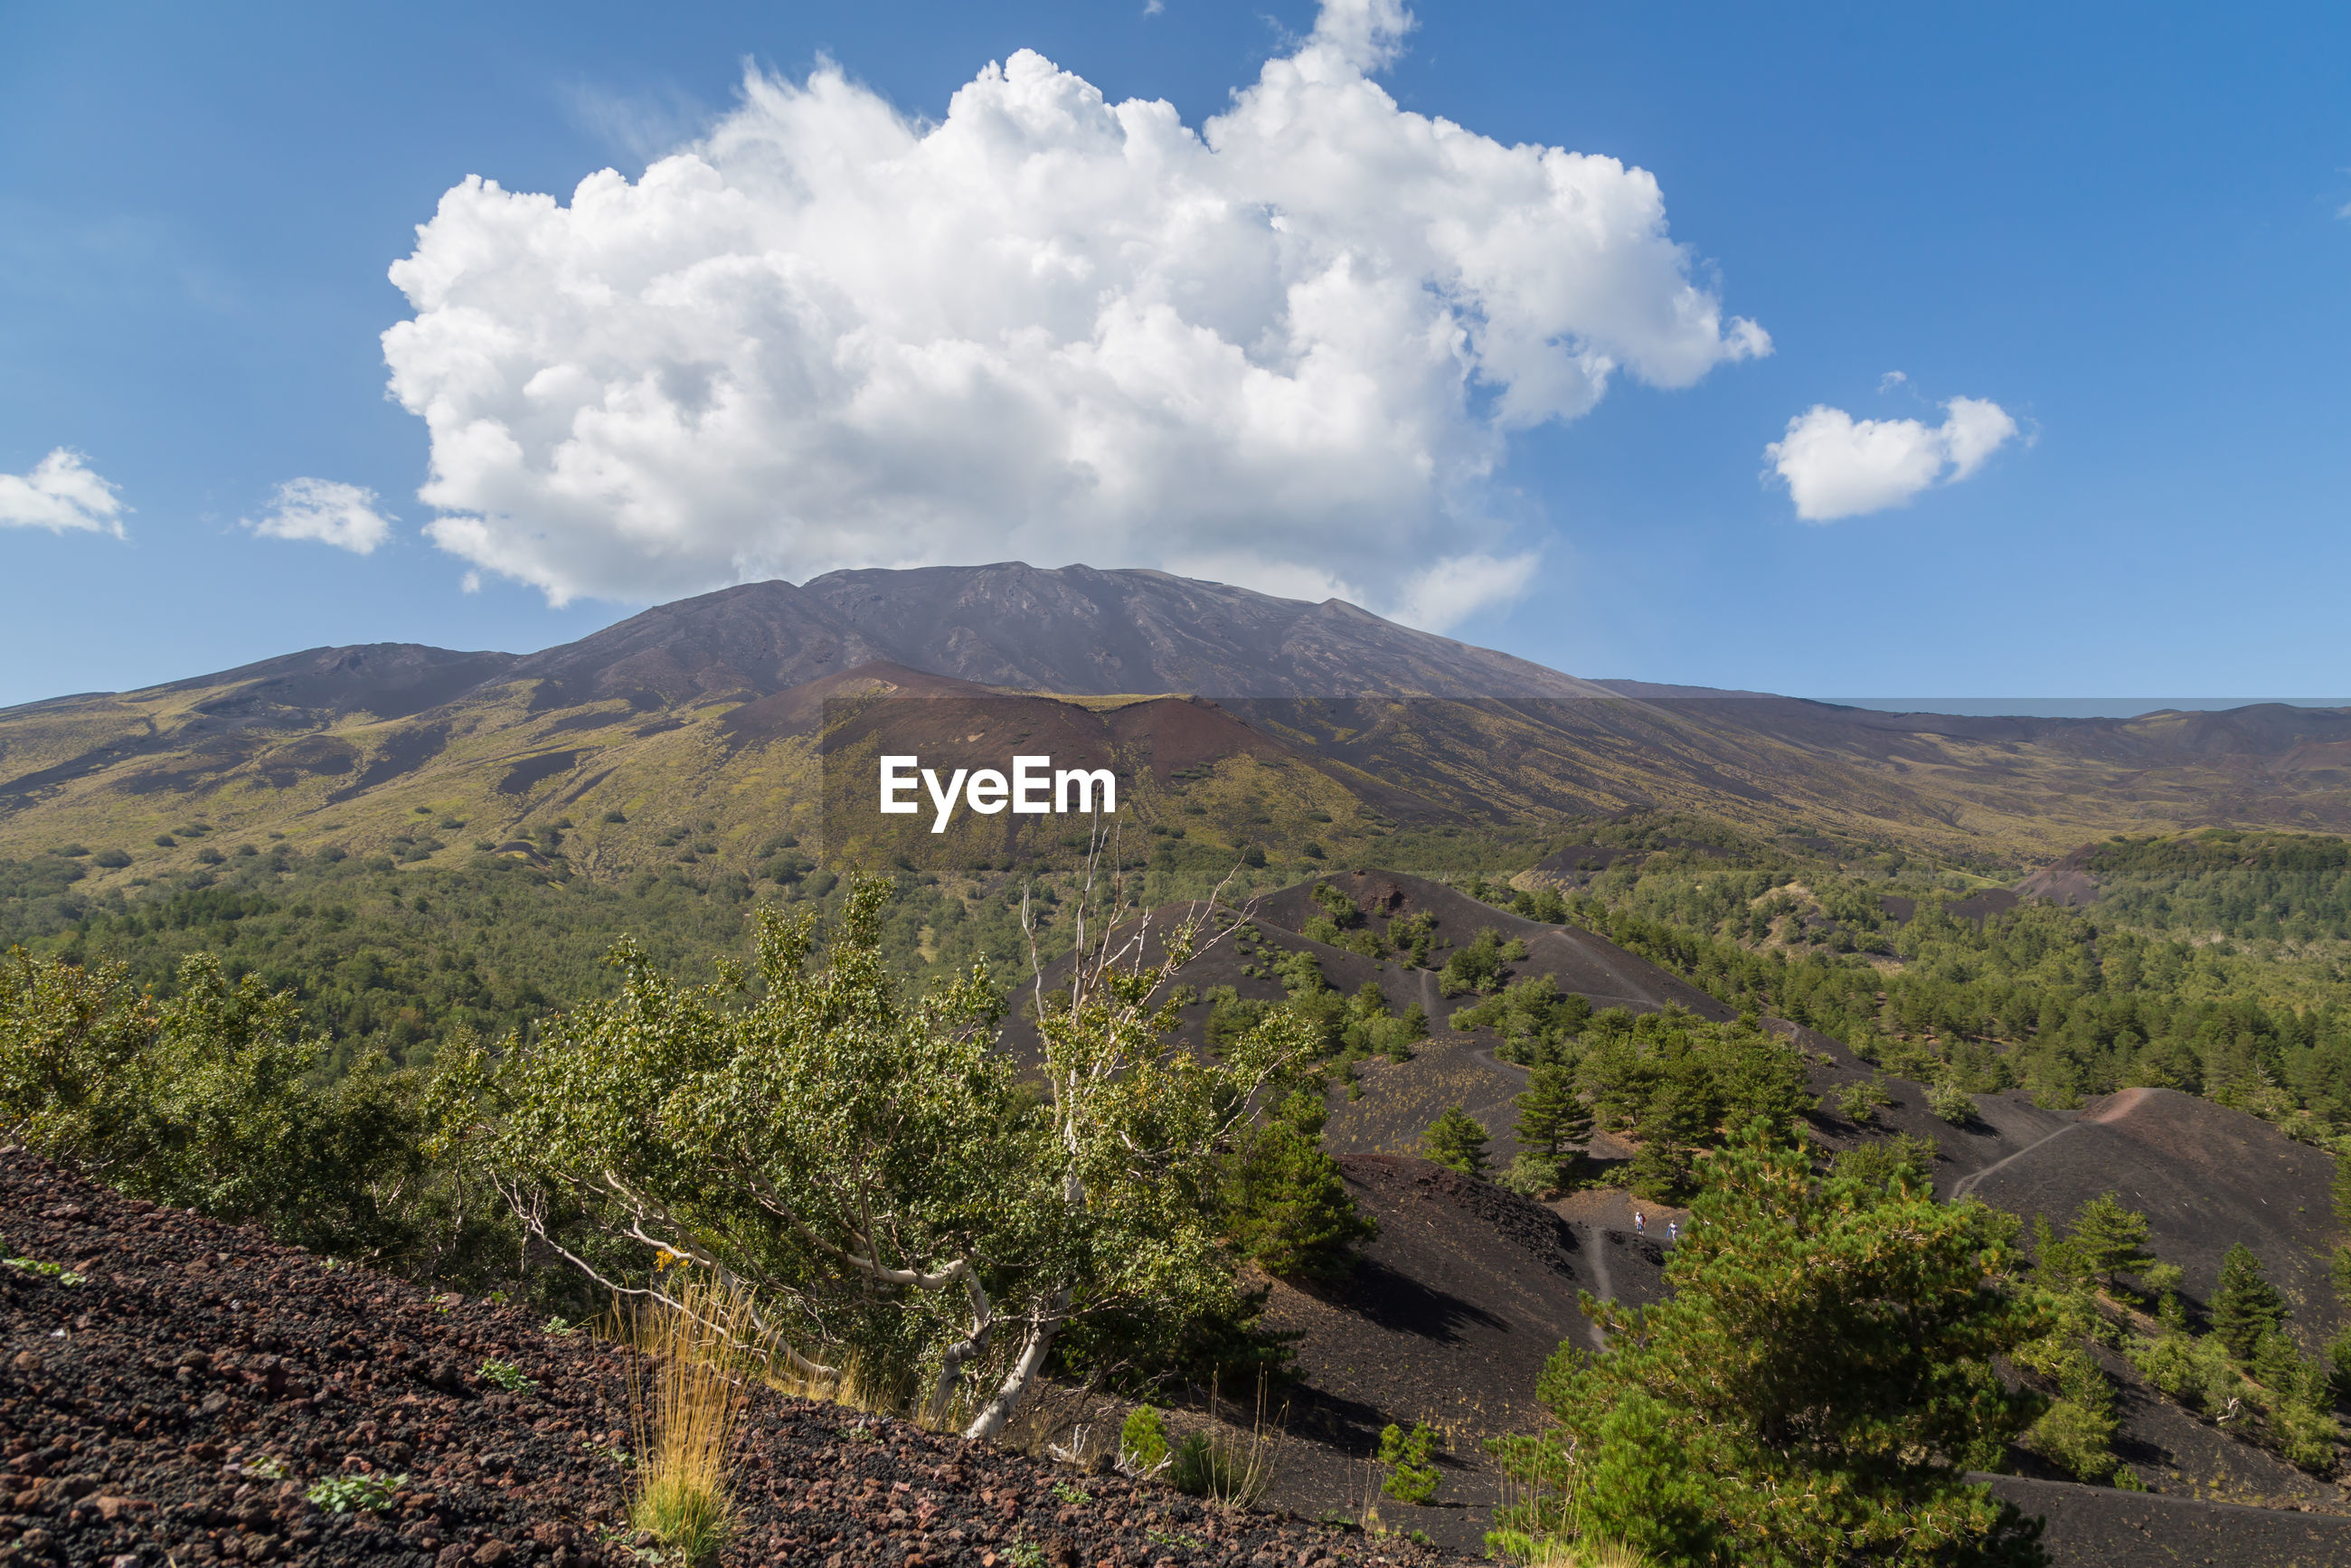 Scenic view of landscape around mount etna with rising steam clouds against blue sky